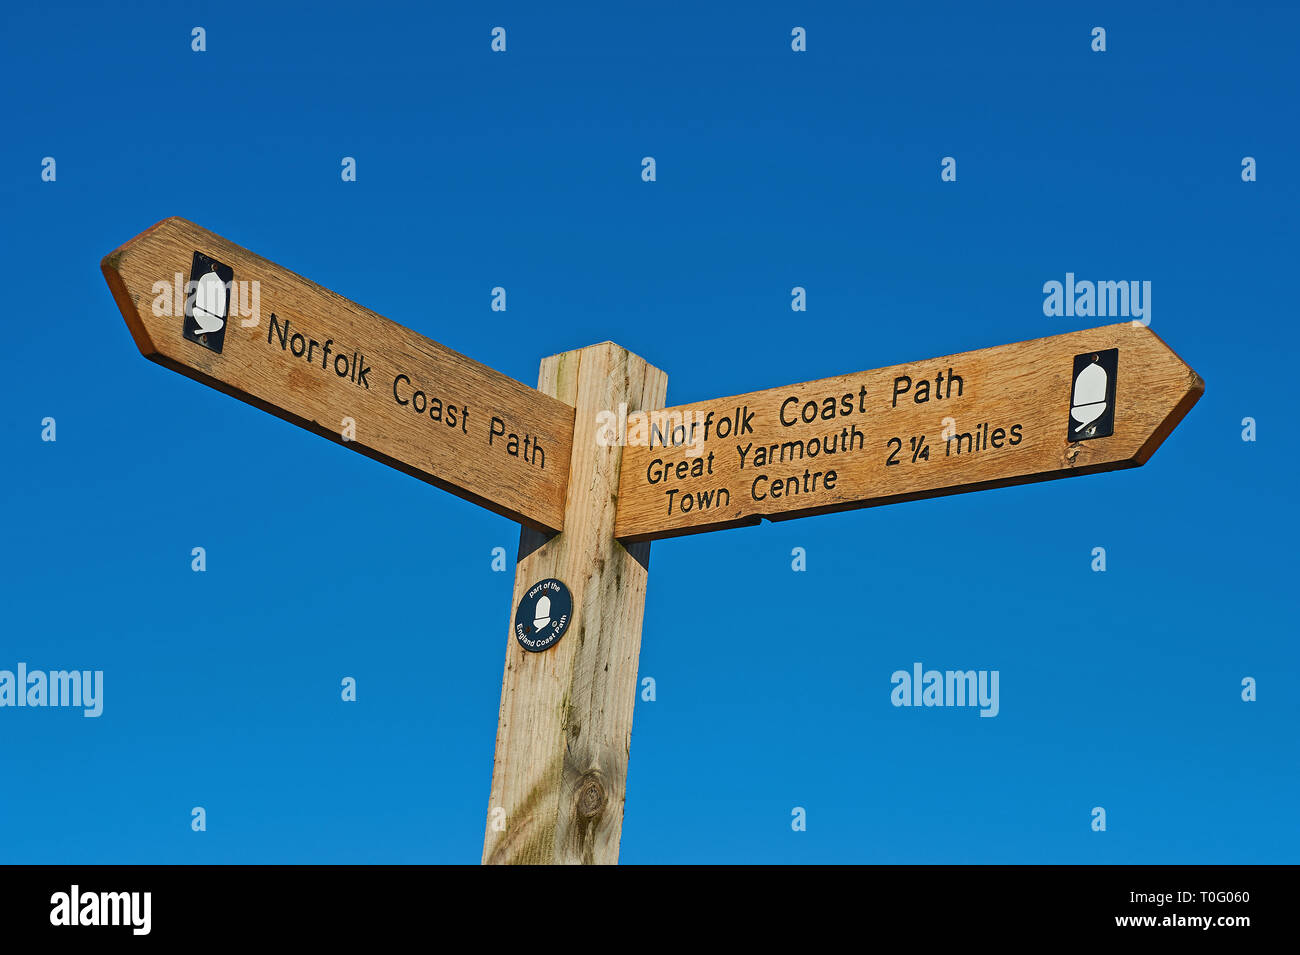 Wooden finger post sign against a blue sky Stock Photo